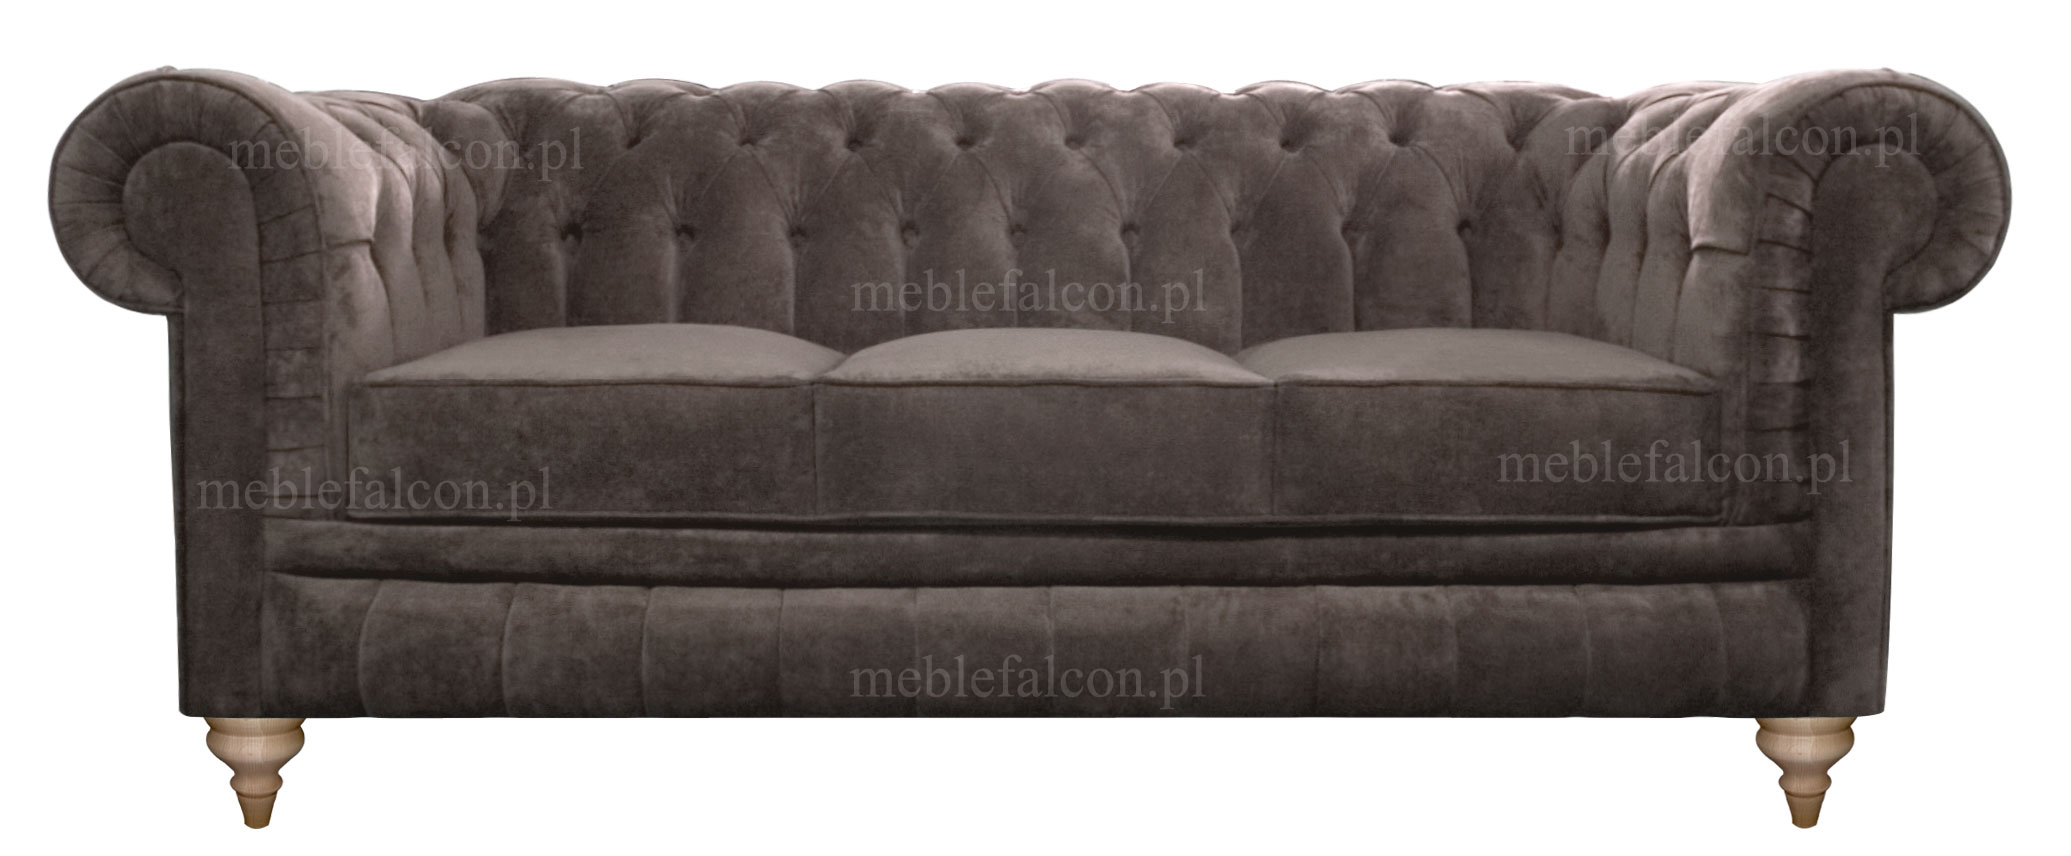 sofa chesterfield pluszowa